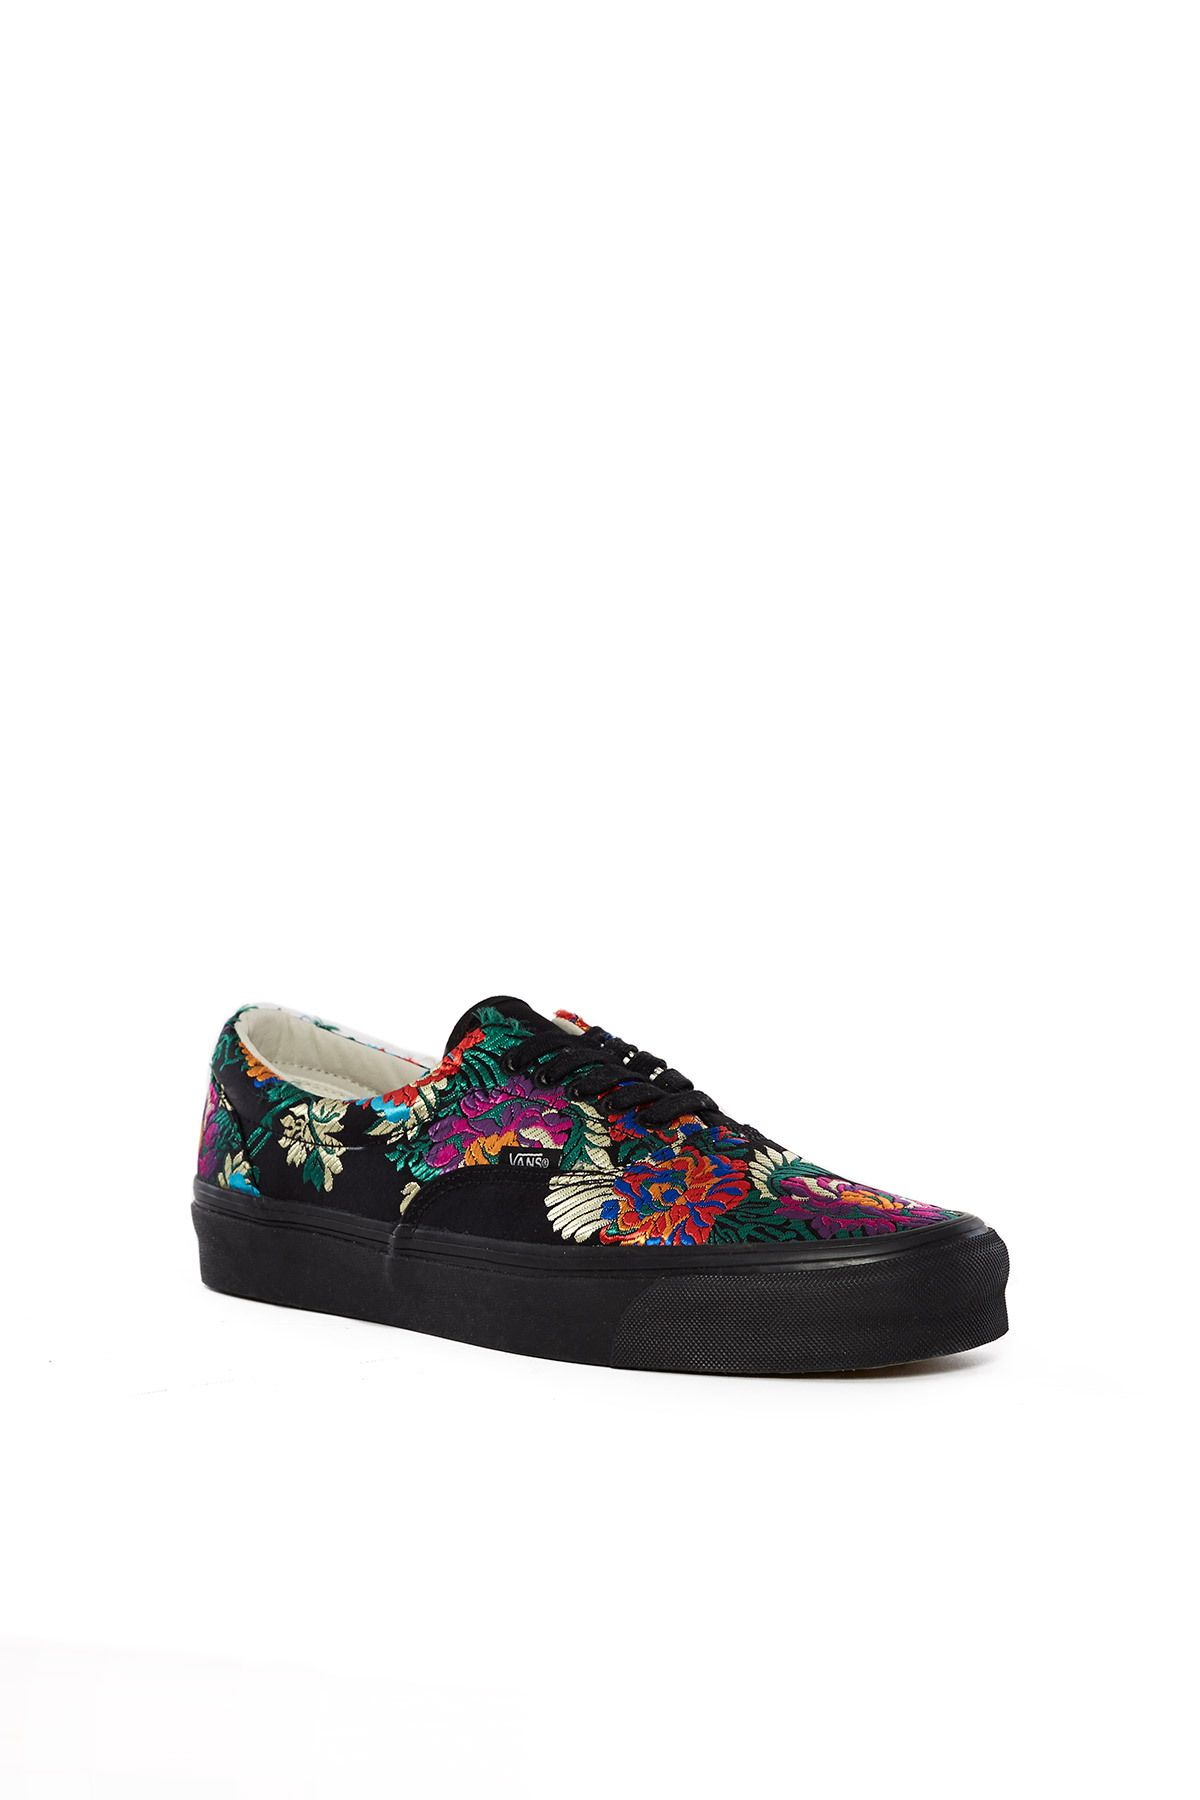 competitive price d62bf f0813 Vans for Opening Ceremony  OC Satin Floral OG Era LX Sneaker  Opening  Ceremony